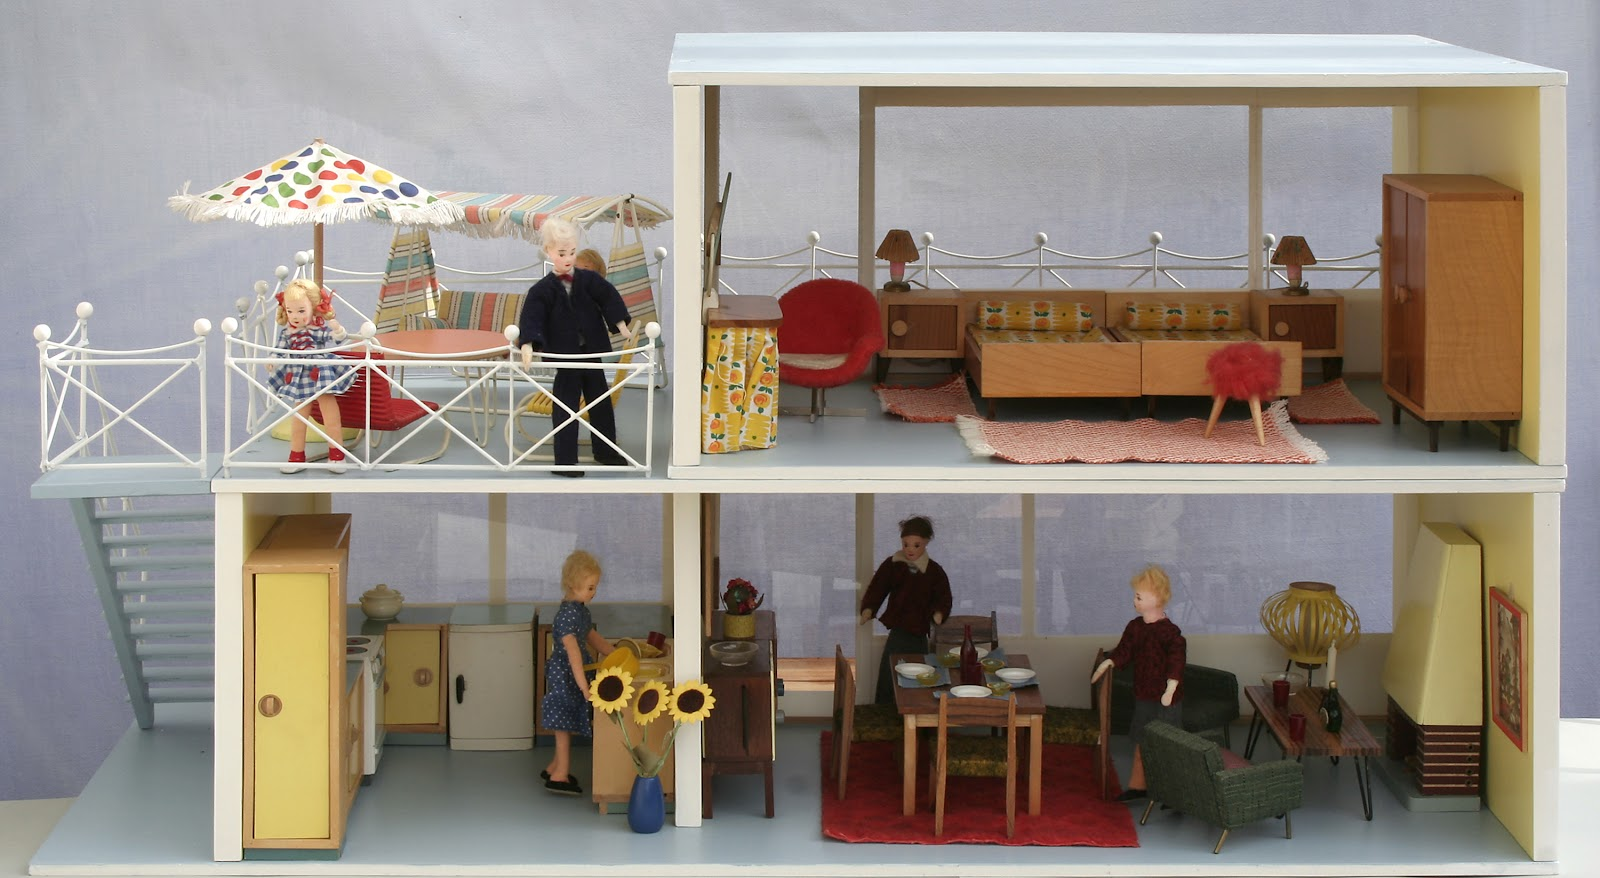 diepuppenstubensammlerin puppenhaus 1964 bodo hennig dollhouse. Black Bedroom Furniture Sets. Home Design Ideas